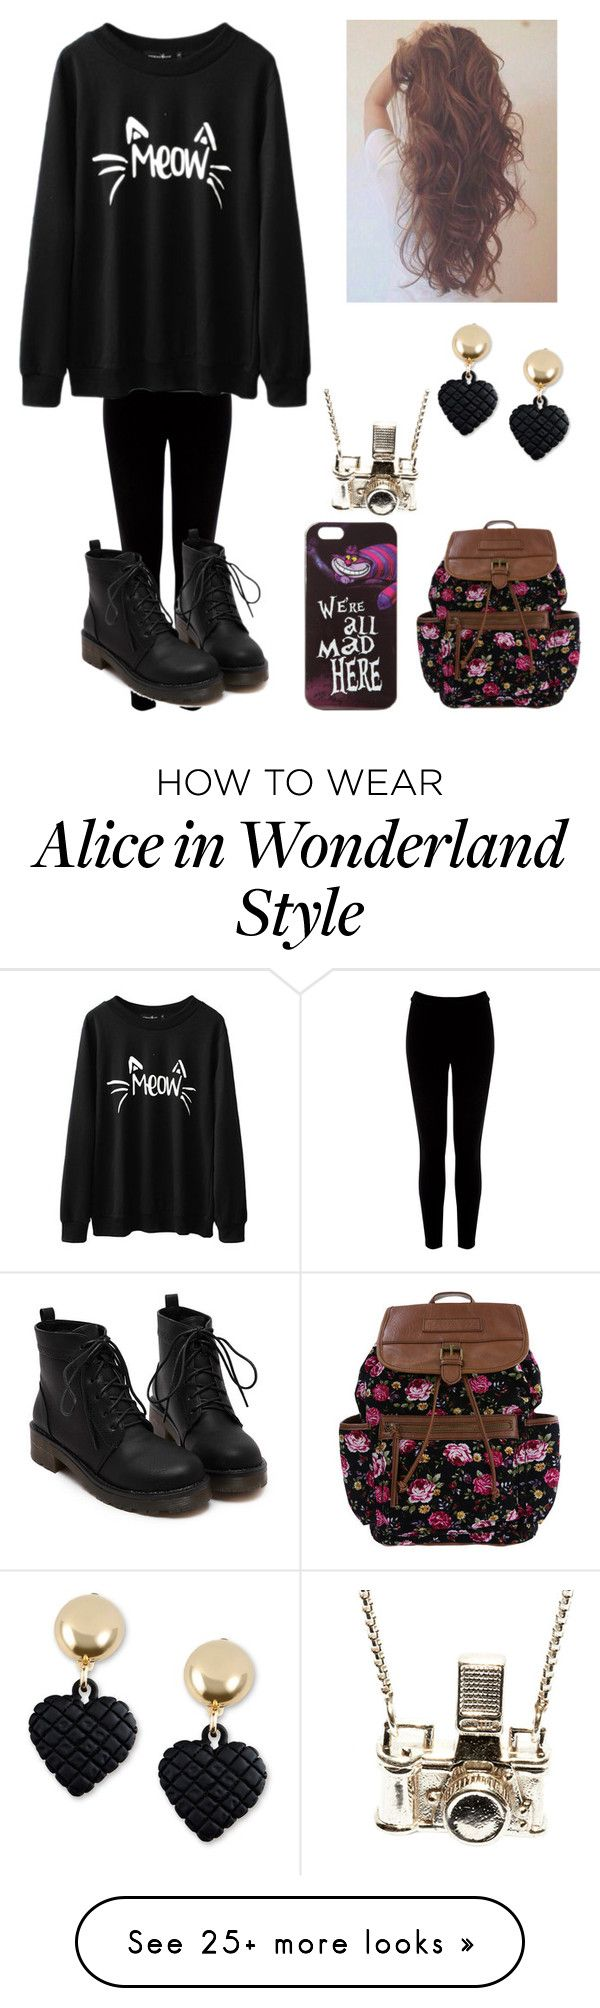 """""""Untitled #529"""" by auroraloves1d on Polyvore featuring Warehouse, Disney, Moschino and Kiel Mead Studio"""